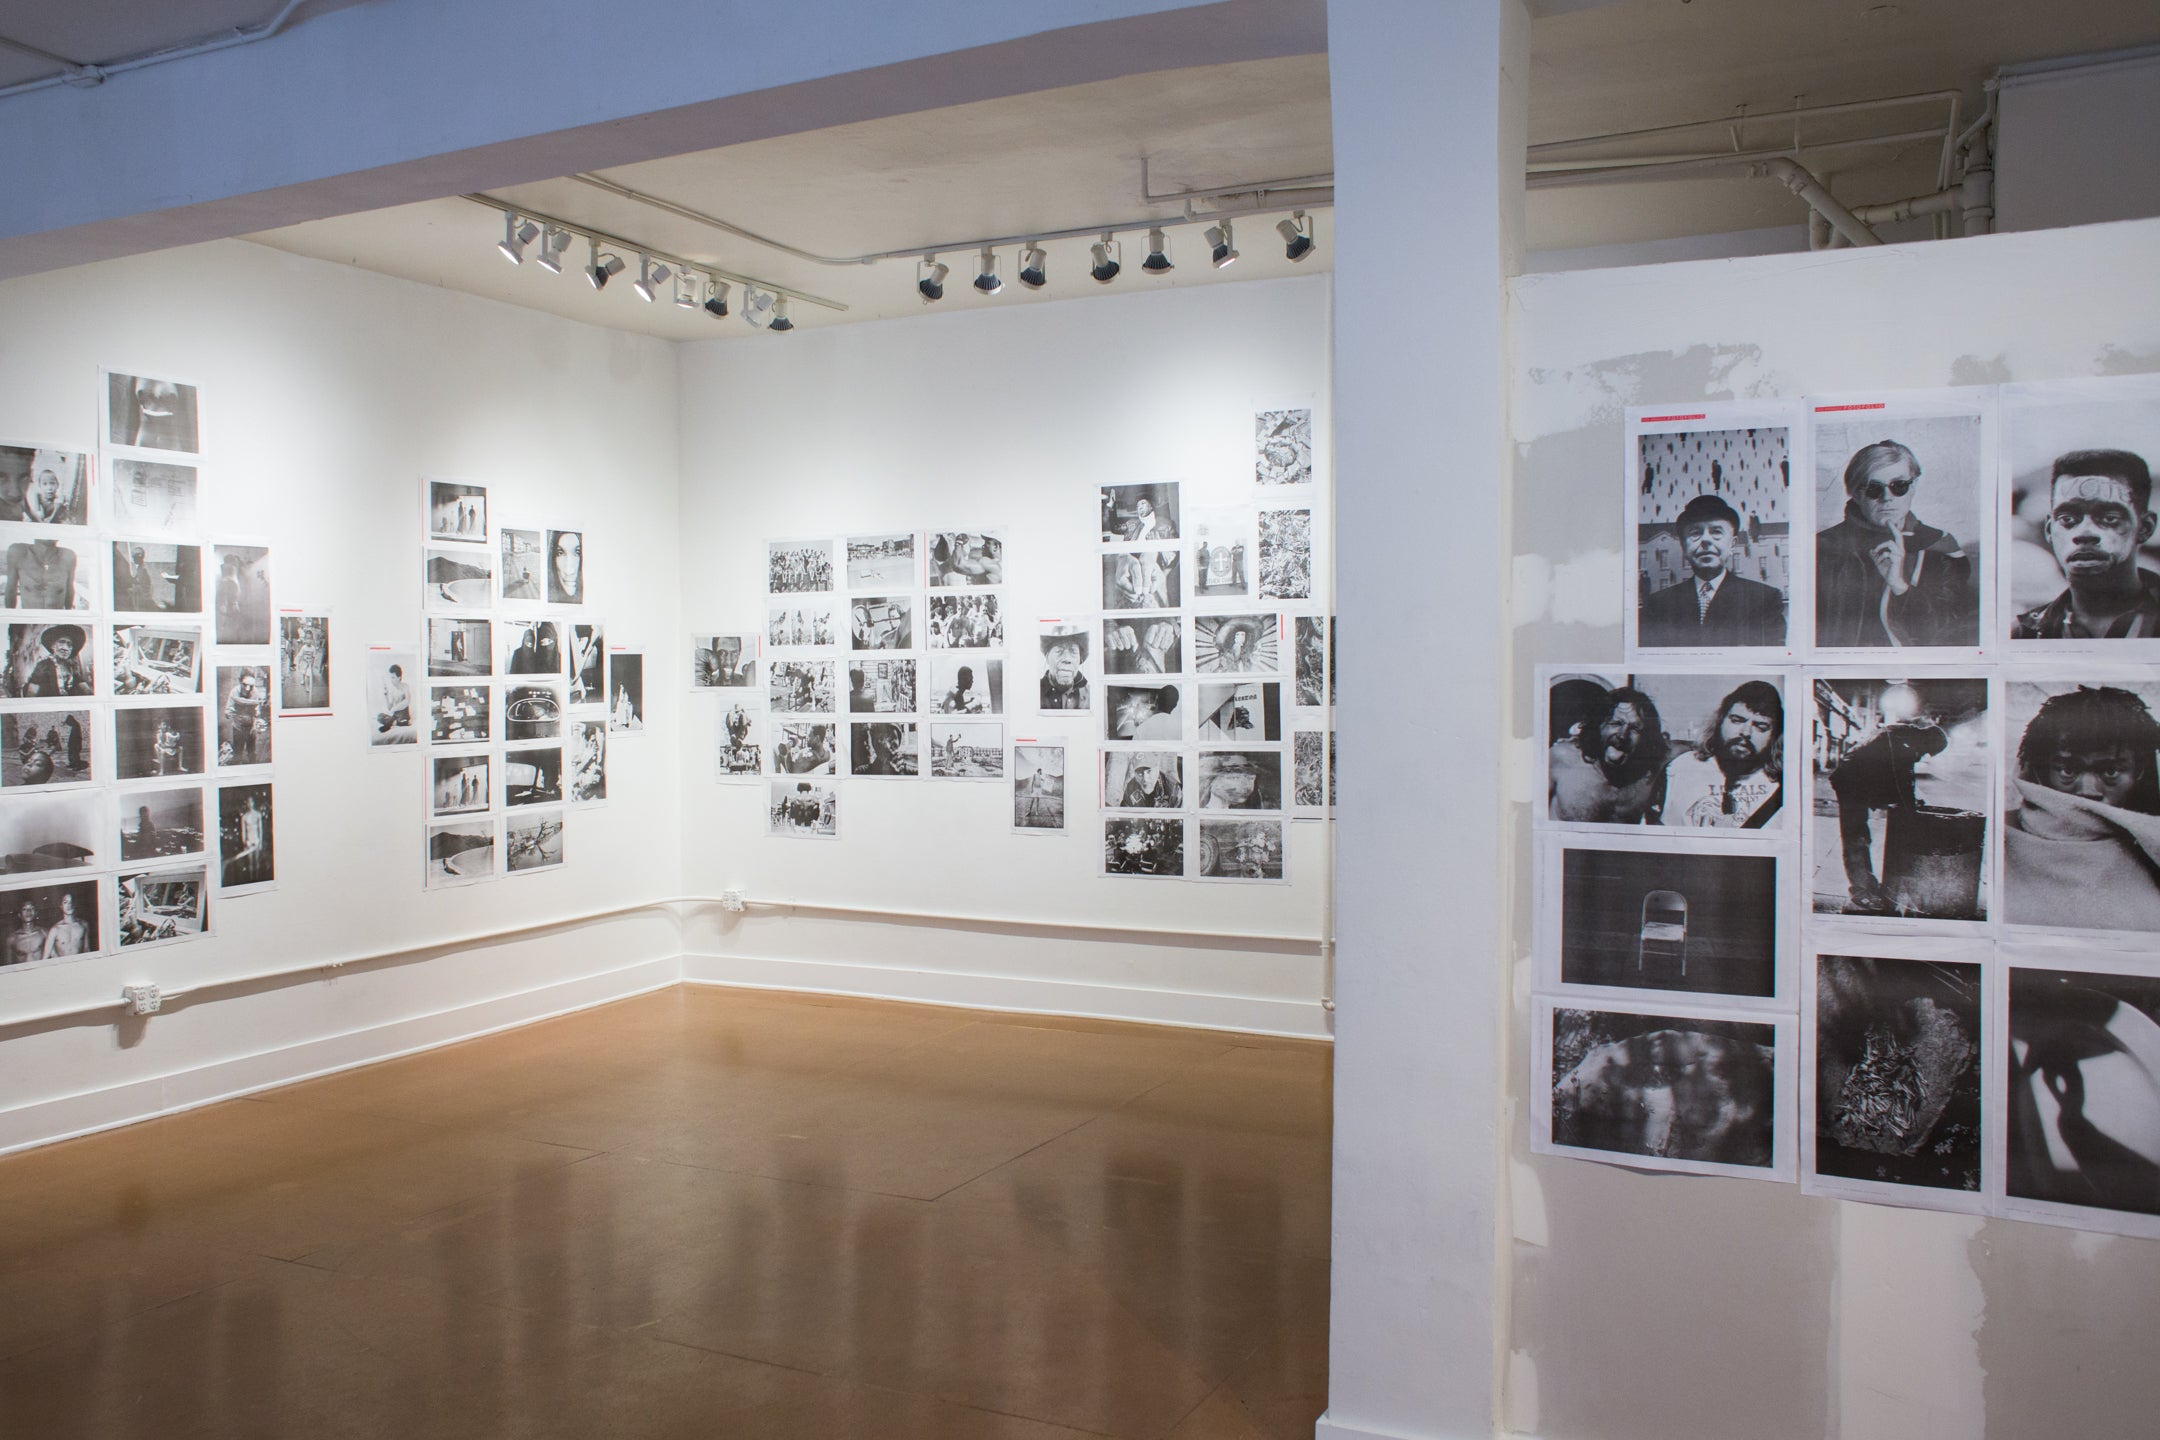 LOS ANGELES FOTOFOLIO #14 | A ONE NIGHT EXHIBITION